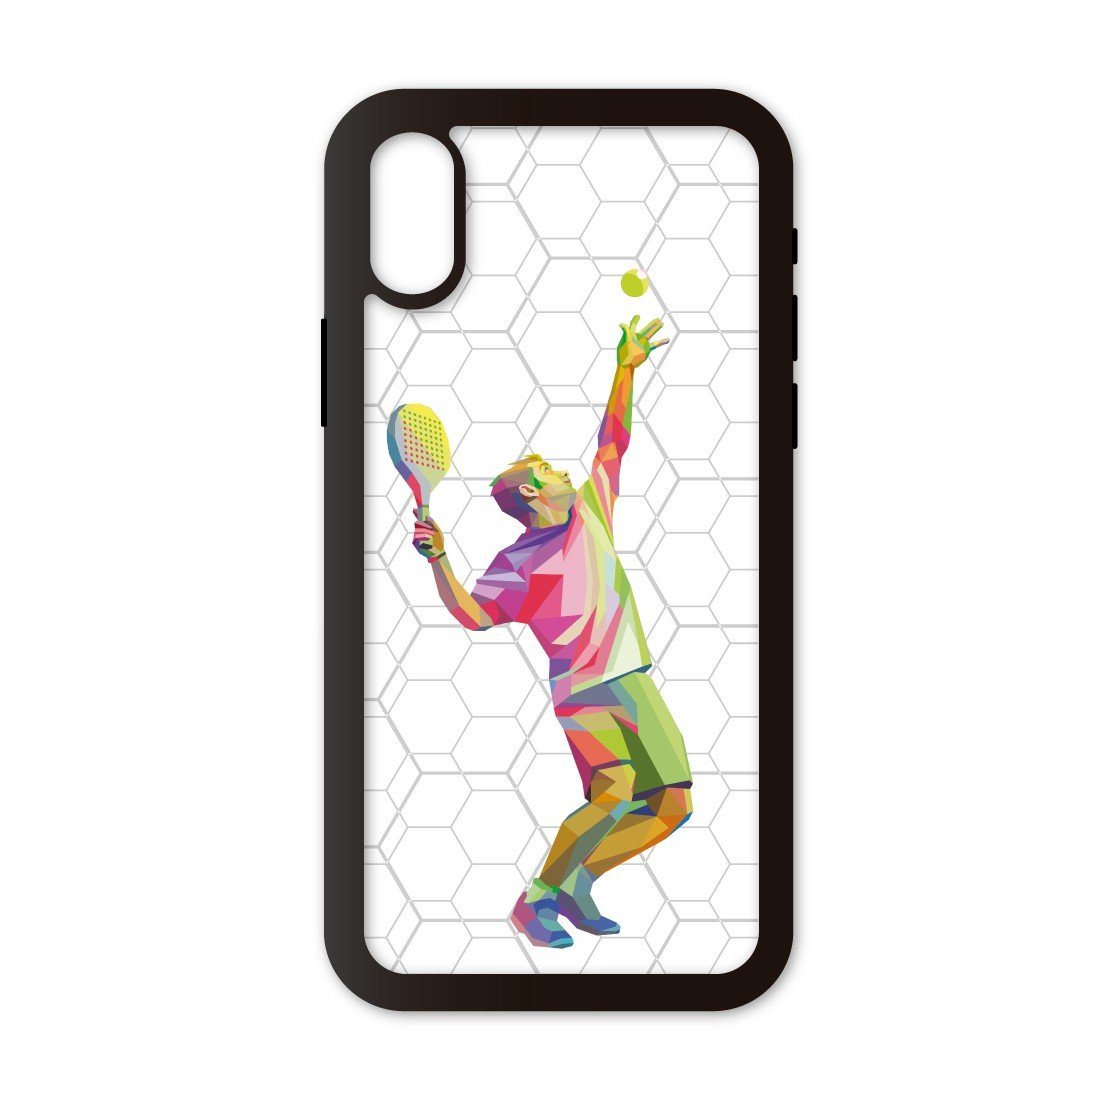 Funda móvil Compatible con iPhone X/XS Padel Saque 3D ...